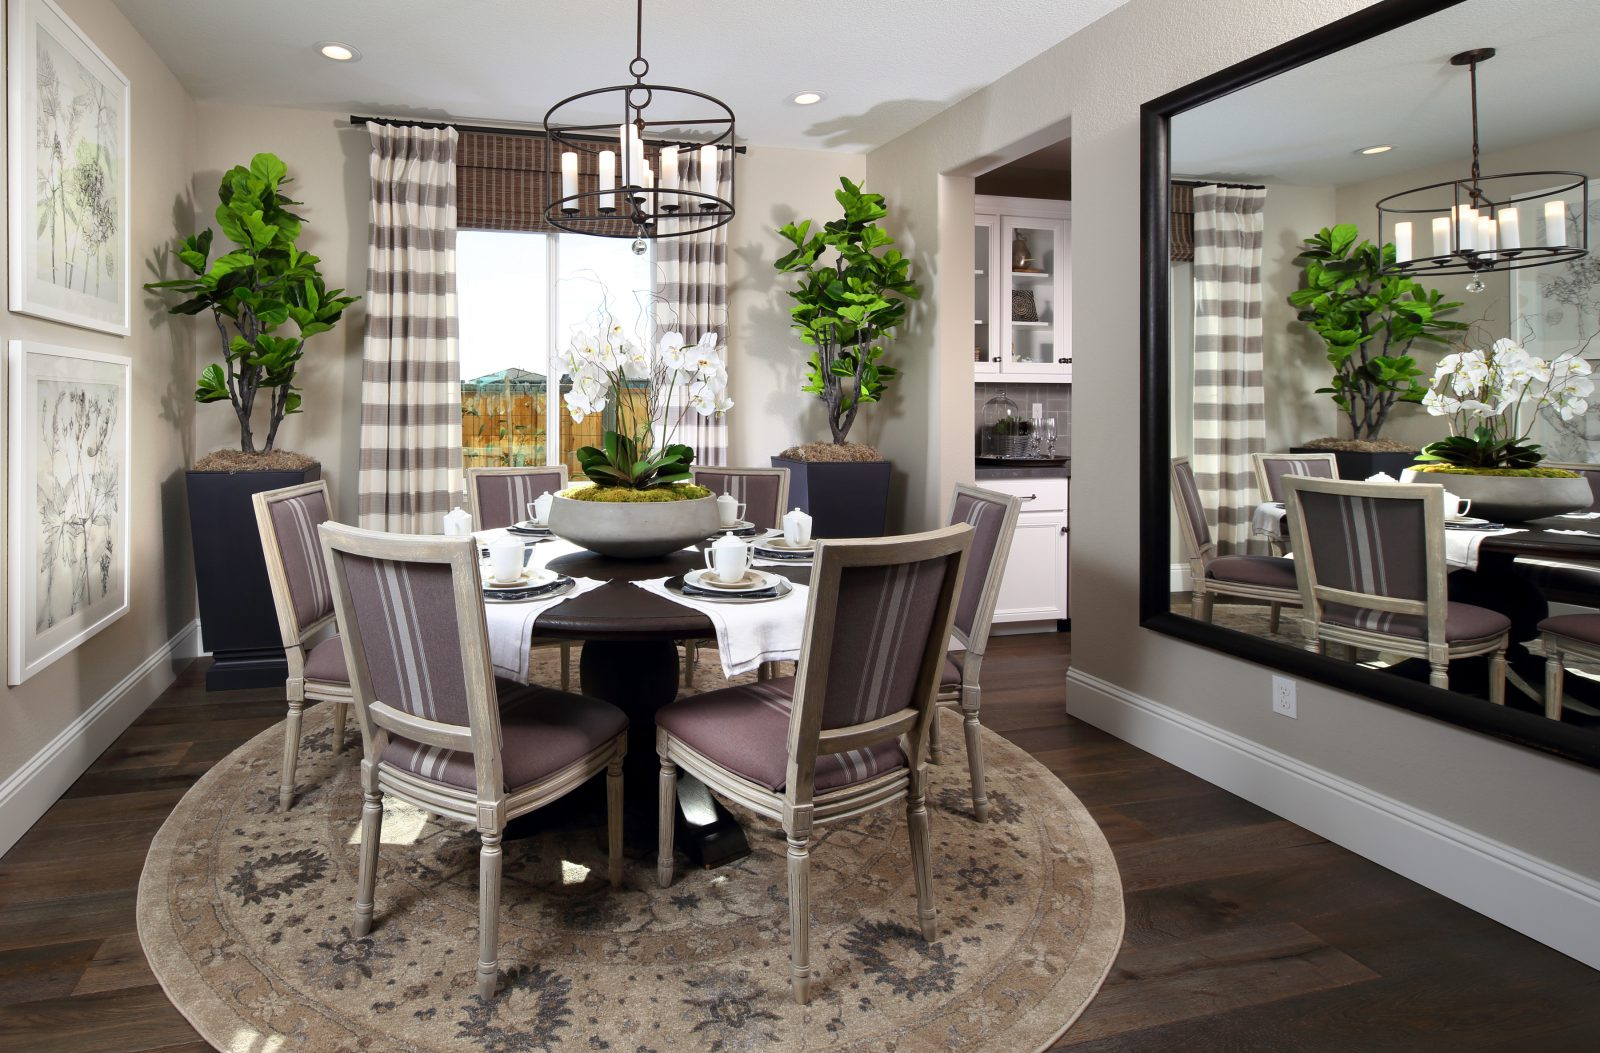 Residence 4 Dining Room | Laurel at Emerson Ranch in Oakley, CA | Brookfield Residential